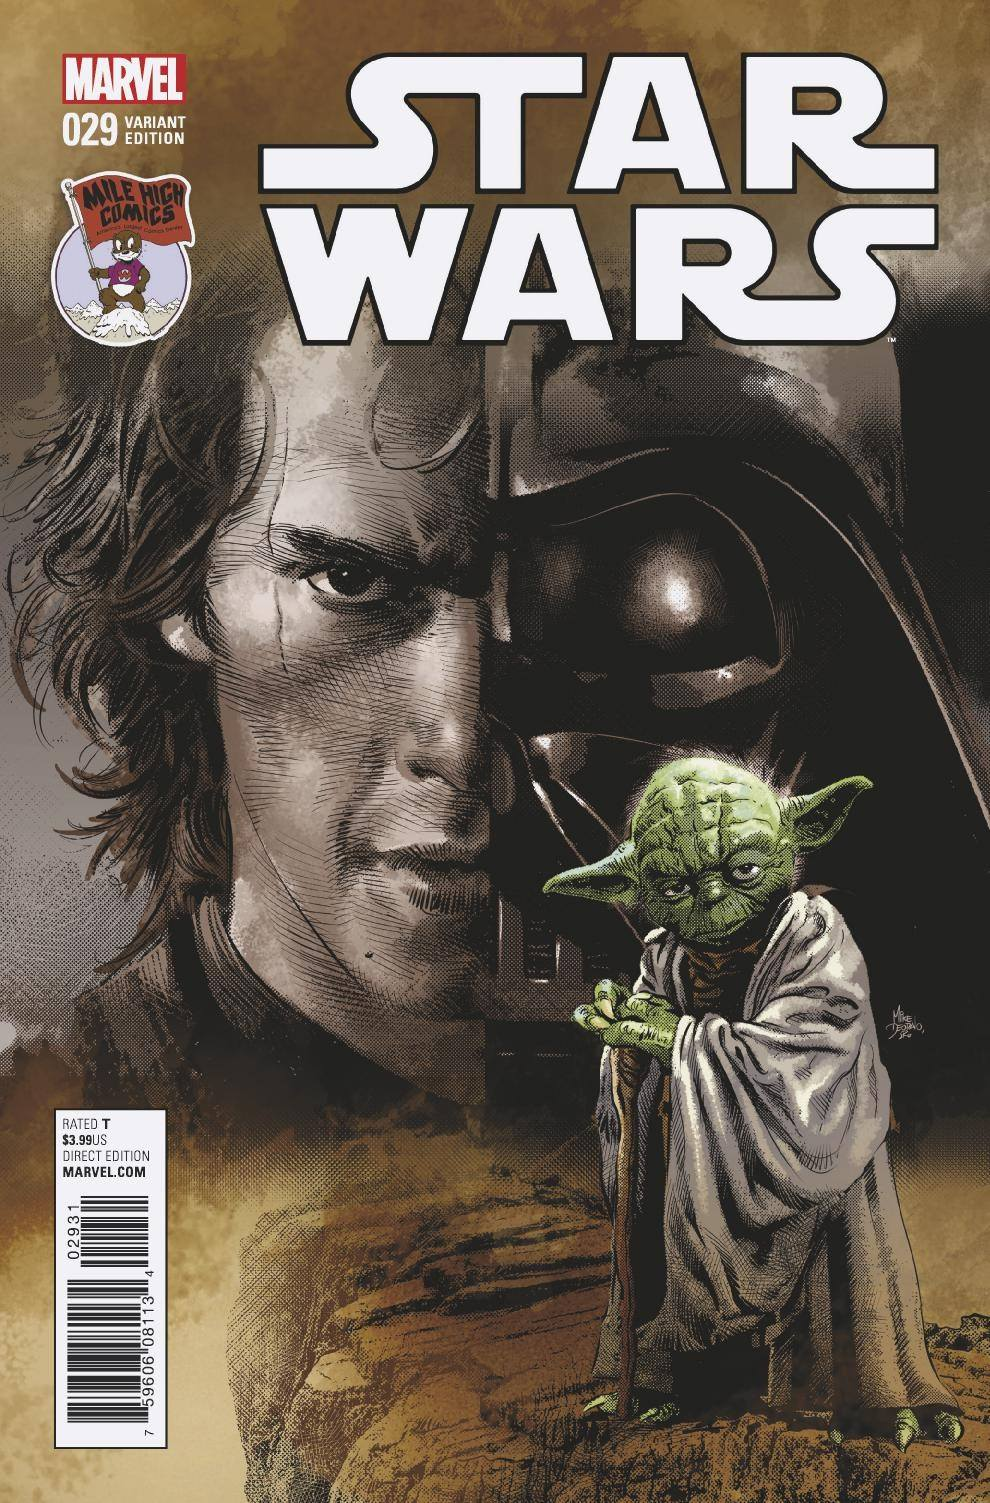 Star Wars #29 (Mike Deodato Mile High Comics Variant Cover) (01.03.2017)